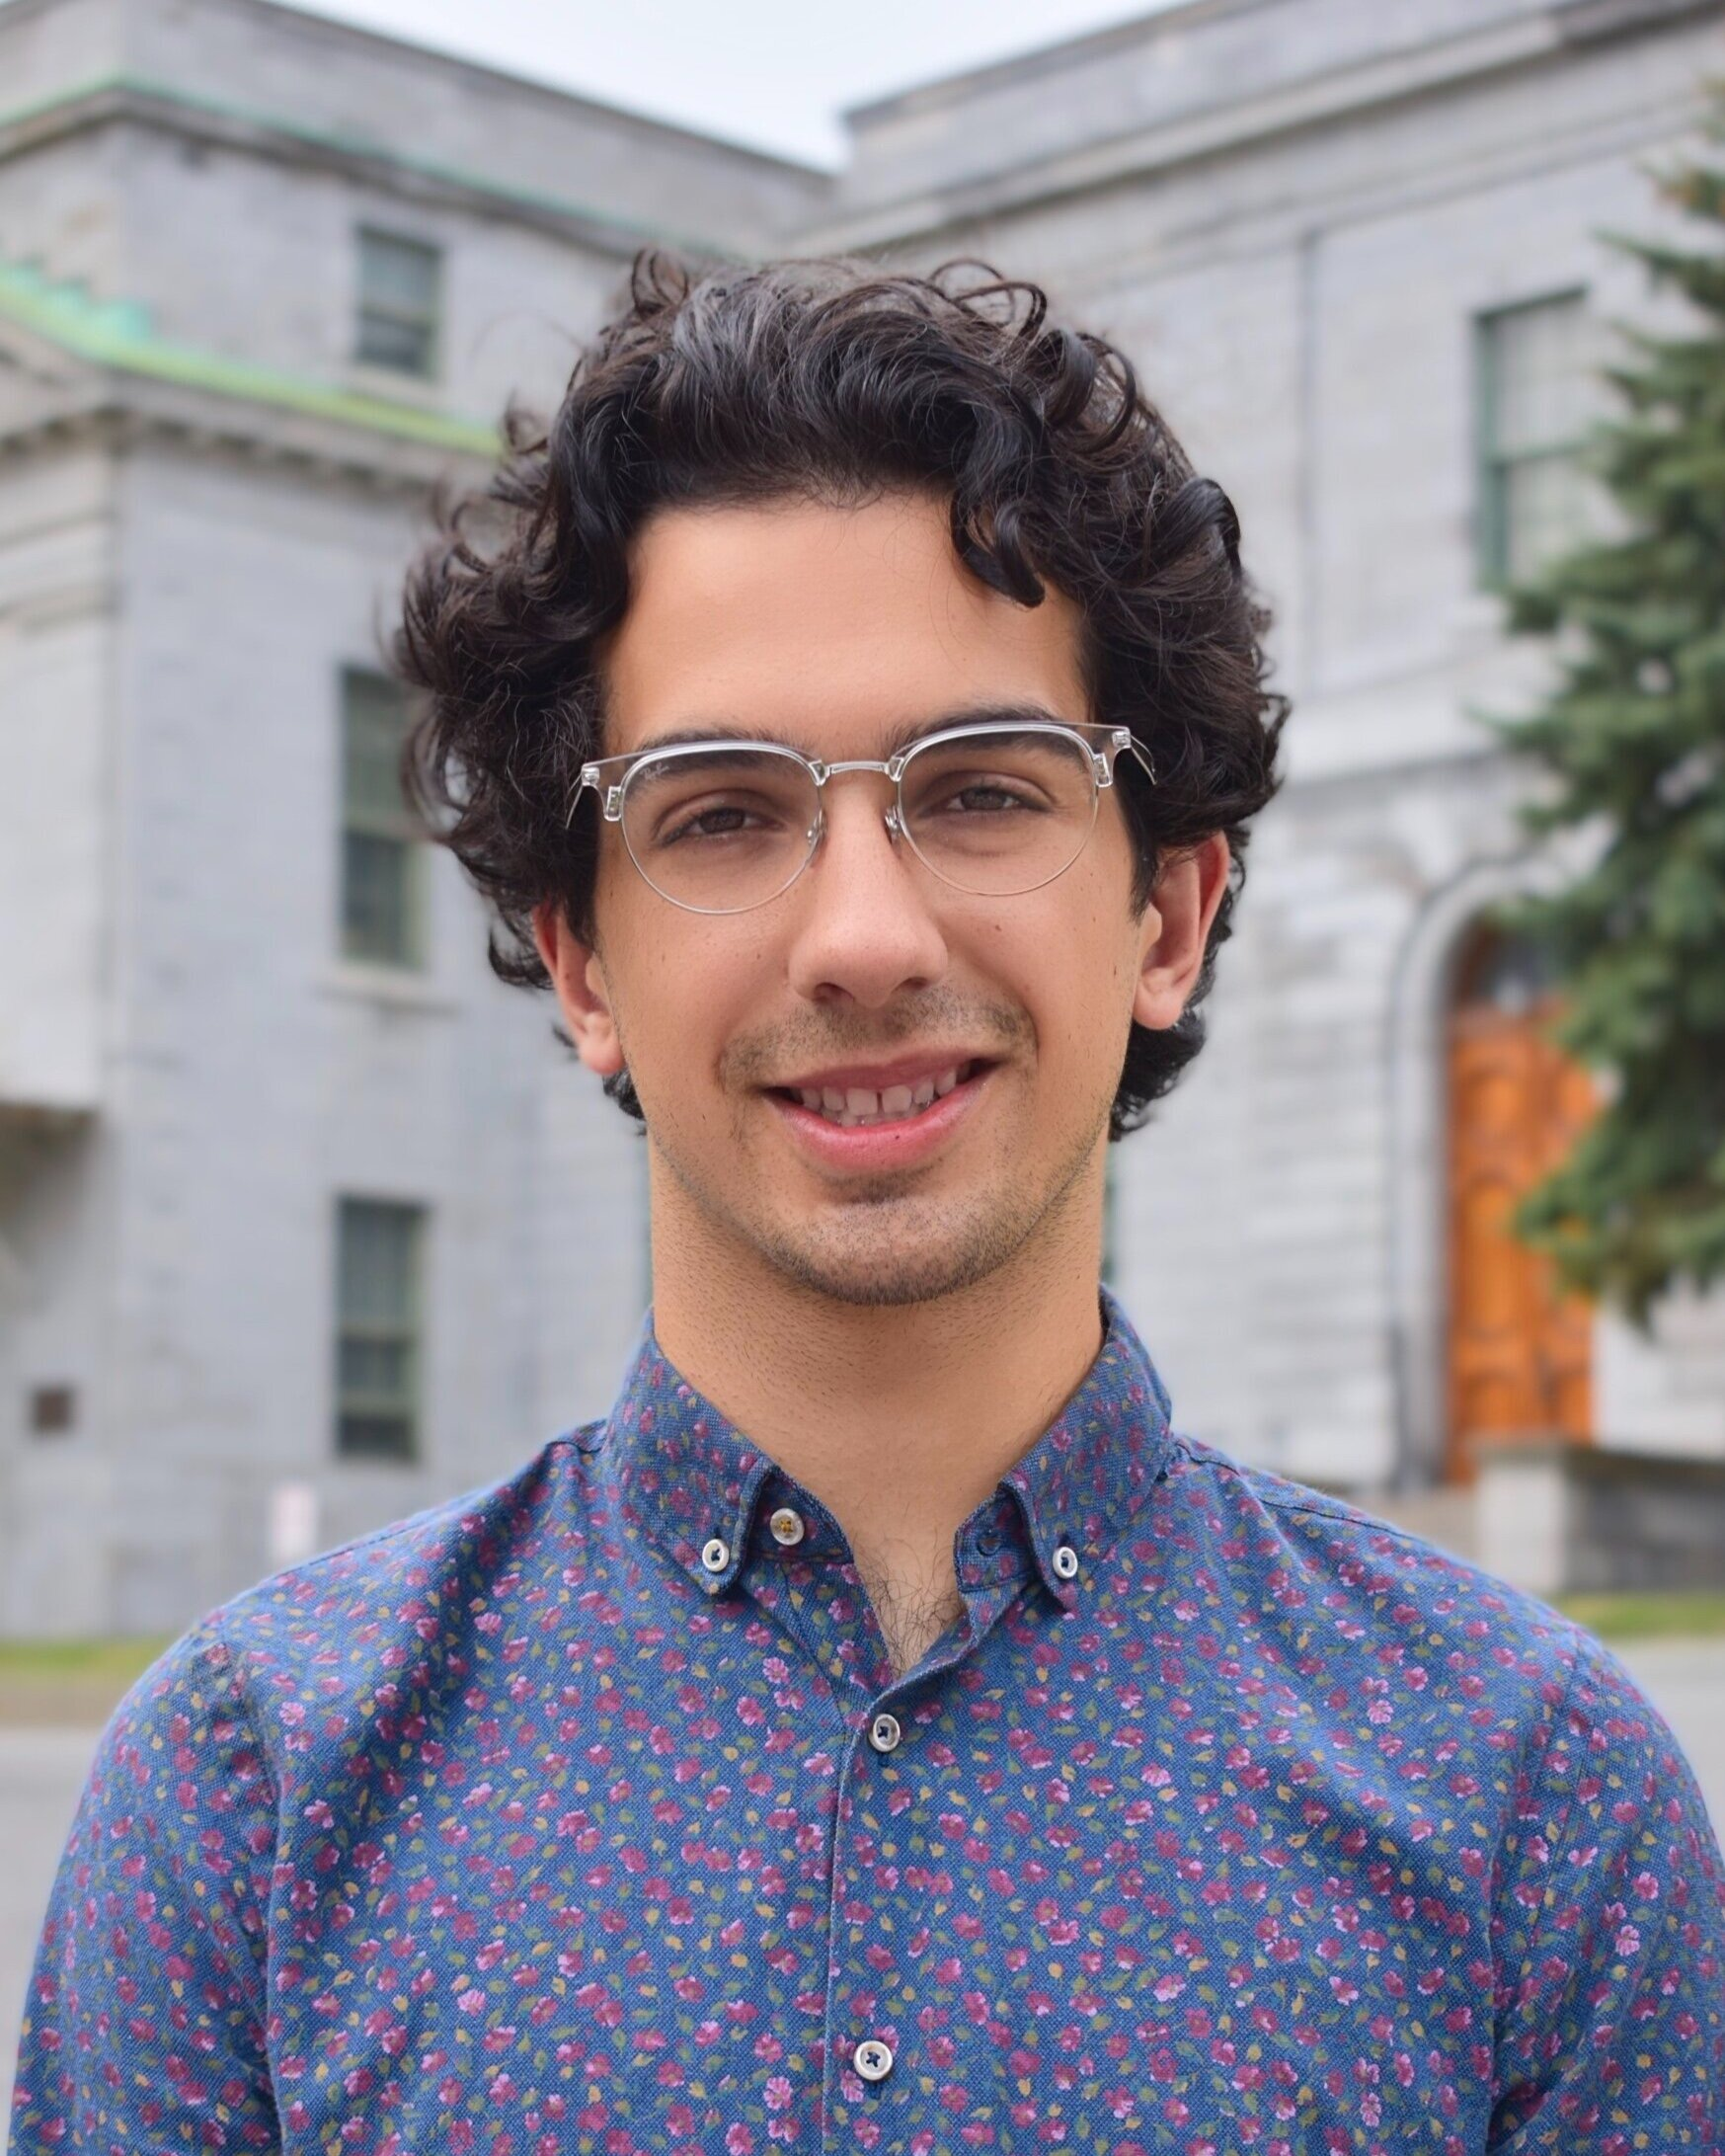 VP Communications - Audun Jawanda   Hiya! My name is Audun Jawanda and I am this year's VP Communications. I am U3 double-majoring in Political Science and Economics, with a primary interest in International Political Economy and International Trade. I'm a proud New Yorker, despite the fact that real New Yorkers would say I'm not from the city. I love skiing, playing frisbee and spending far too much time wasting on the internet (reddit, twitter, whatever). My goal this year is to make all PSSA communications engaging, aesthetically pleasing and timely to make sure you all know what's going on. If you have anything interesting happening on campus or just want to chat (over email? really?), email me at  communications@mcgillpssa.ca